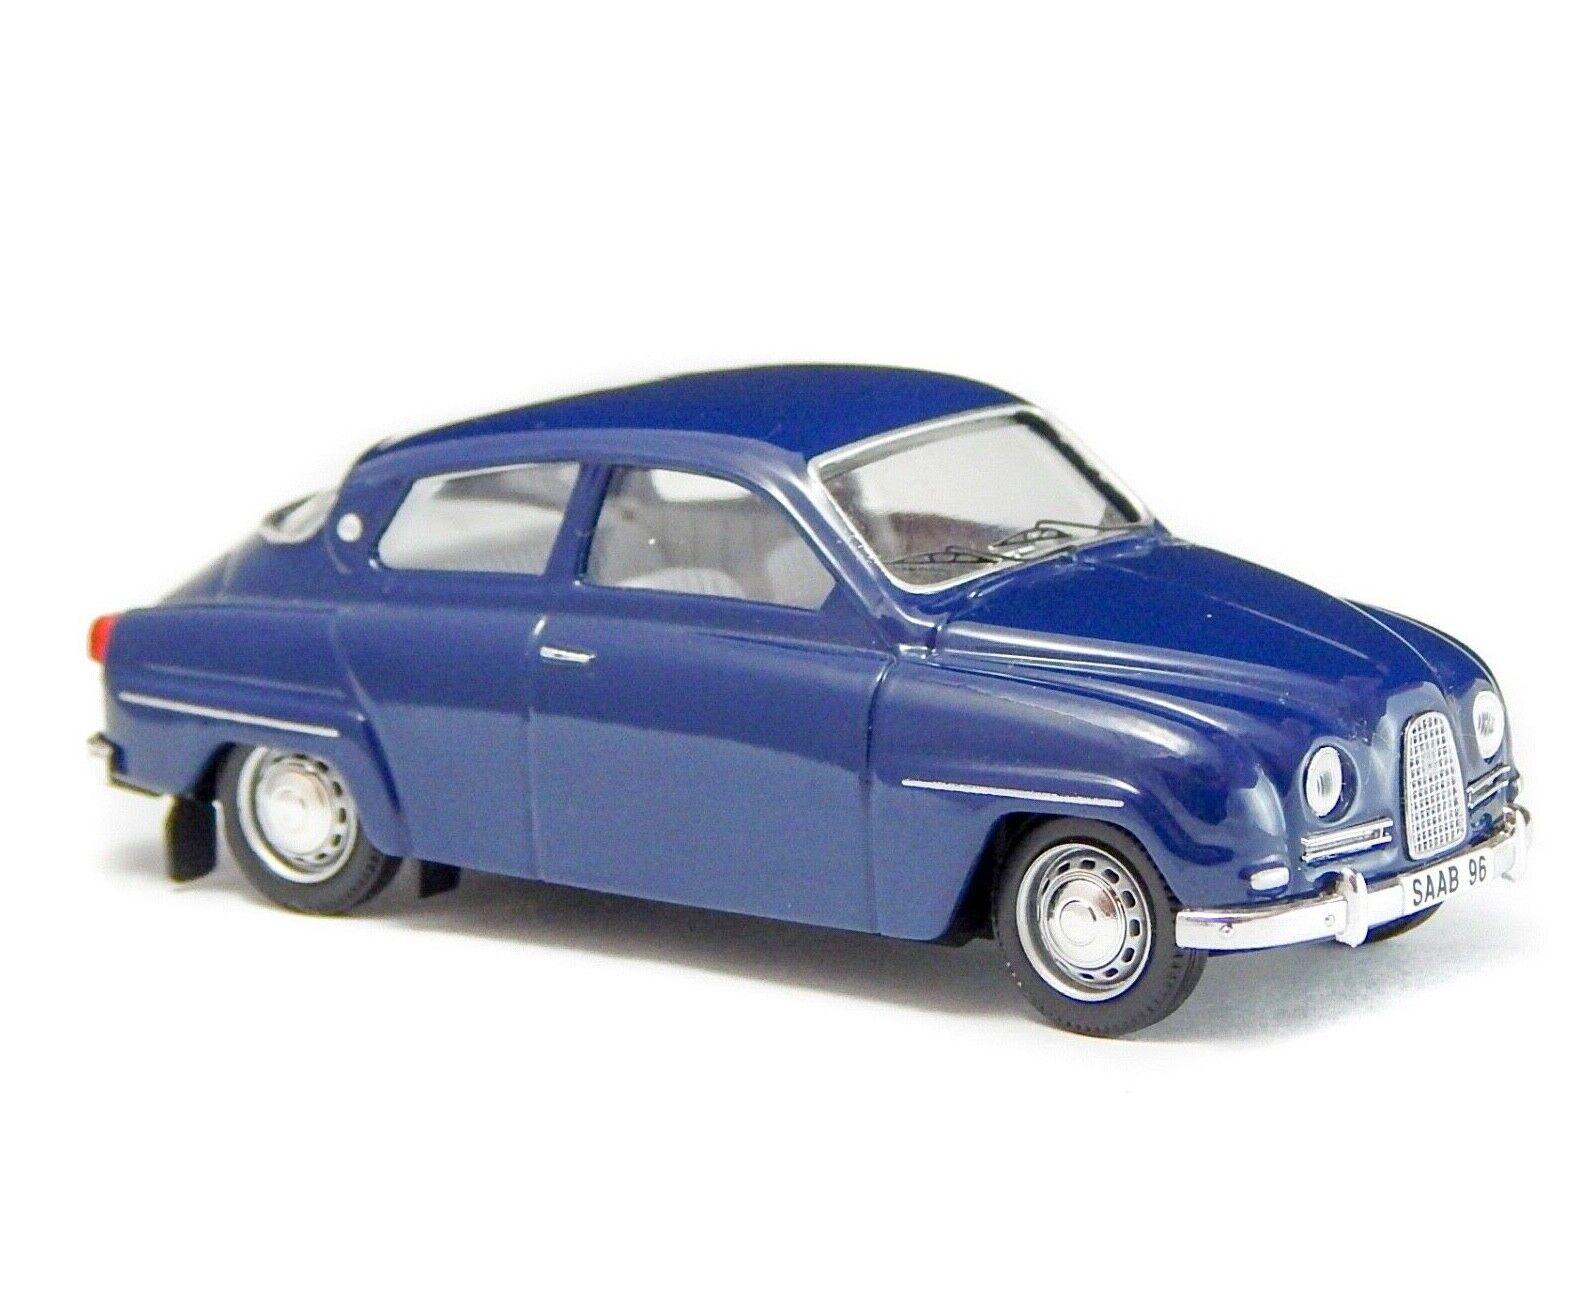 1961 Saab 96 De Luxe Blau 1 43 Trofeu Portugal Vintage Model Car